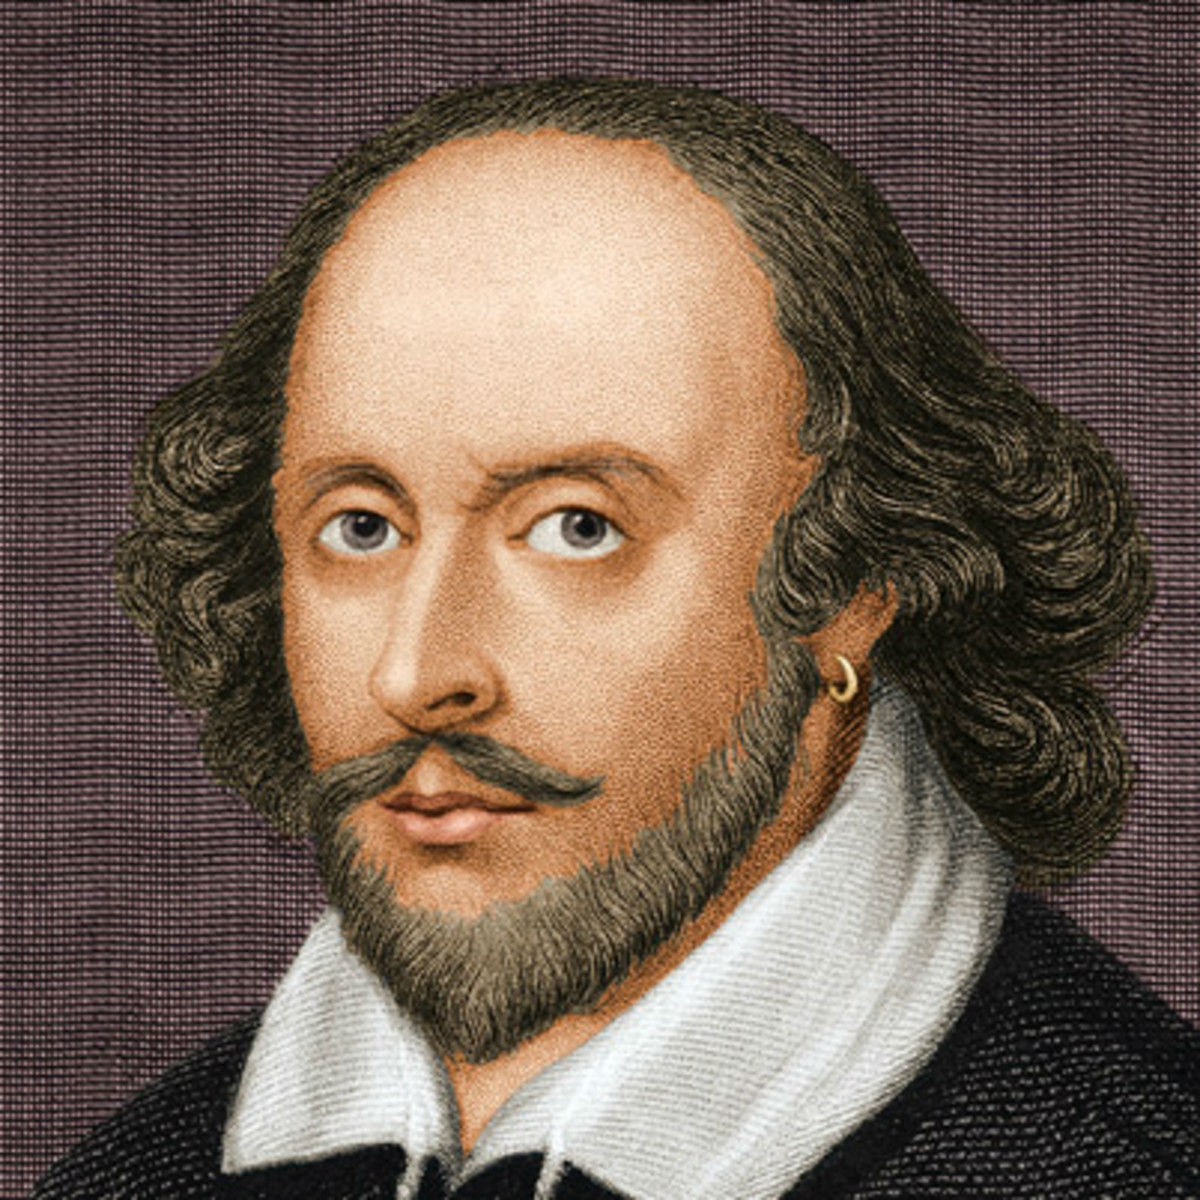 William Shakespeare wrote Much Ado About Nothing in the midst of his career in the late 1500s